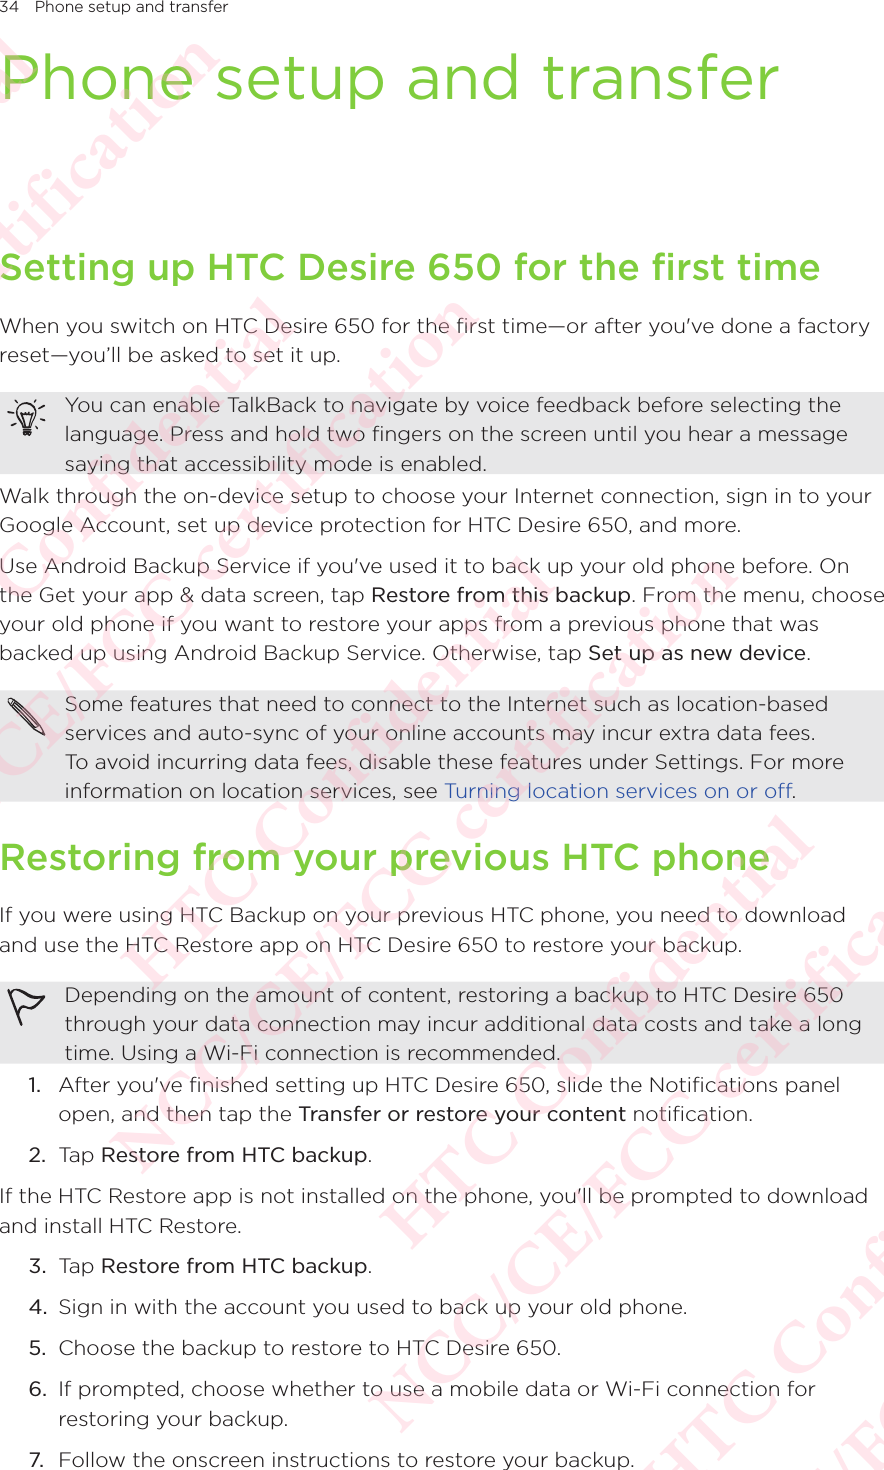 Htc 2pyr100 Smartphone User Manual Part 1